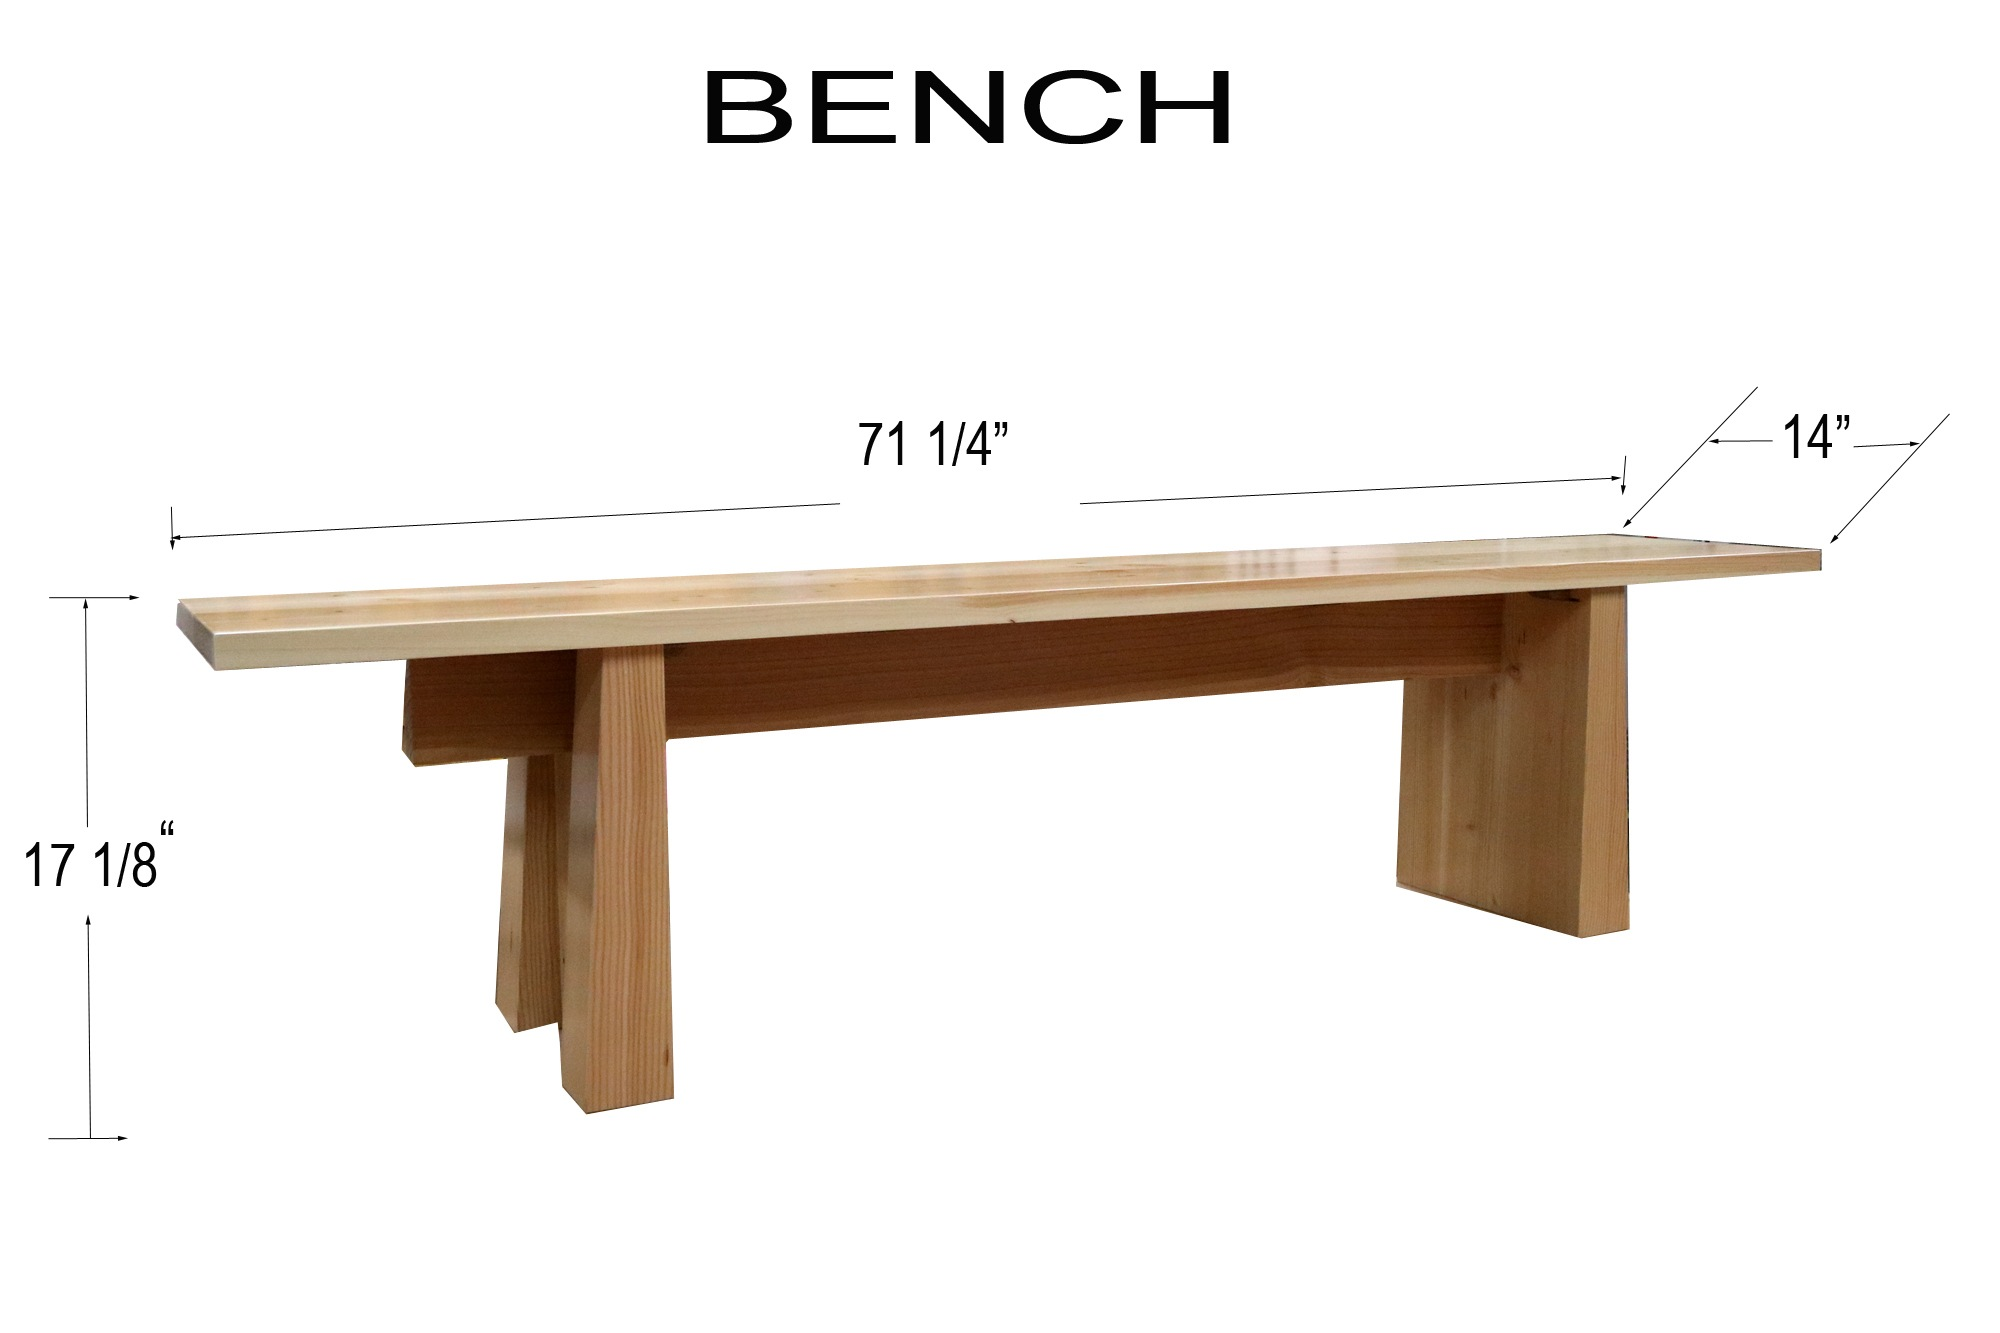 Design & Build a Modern Bench